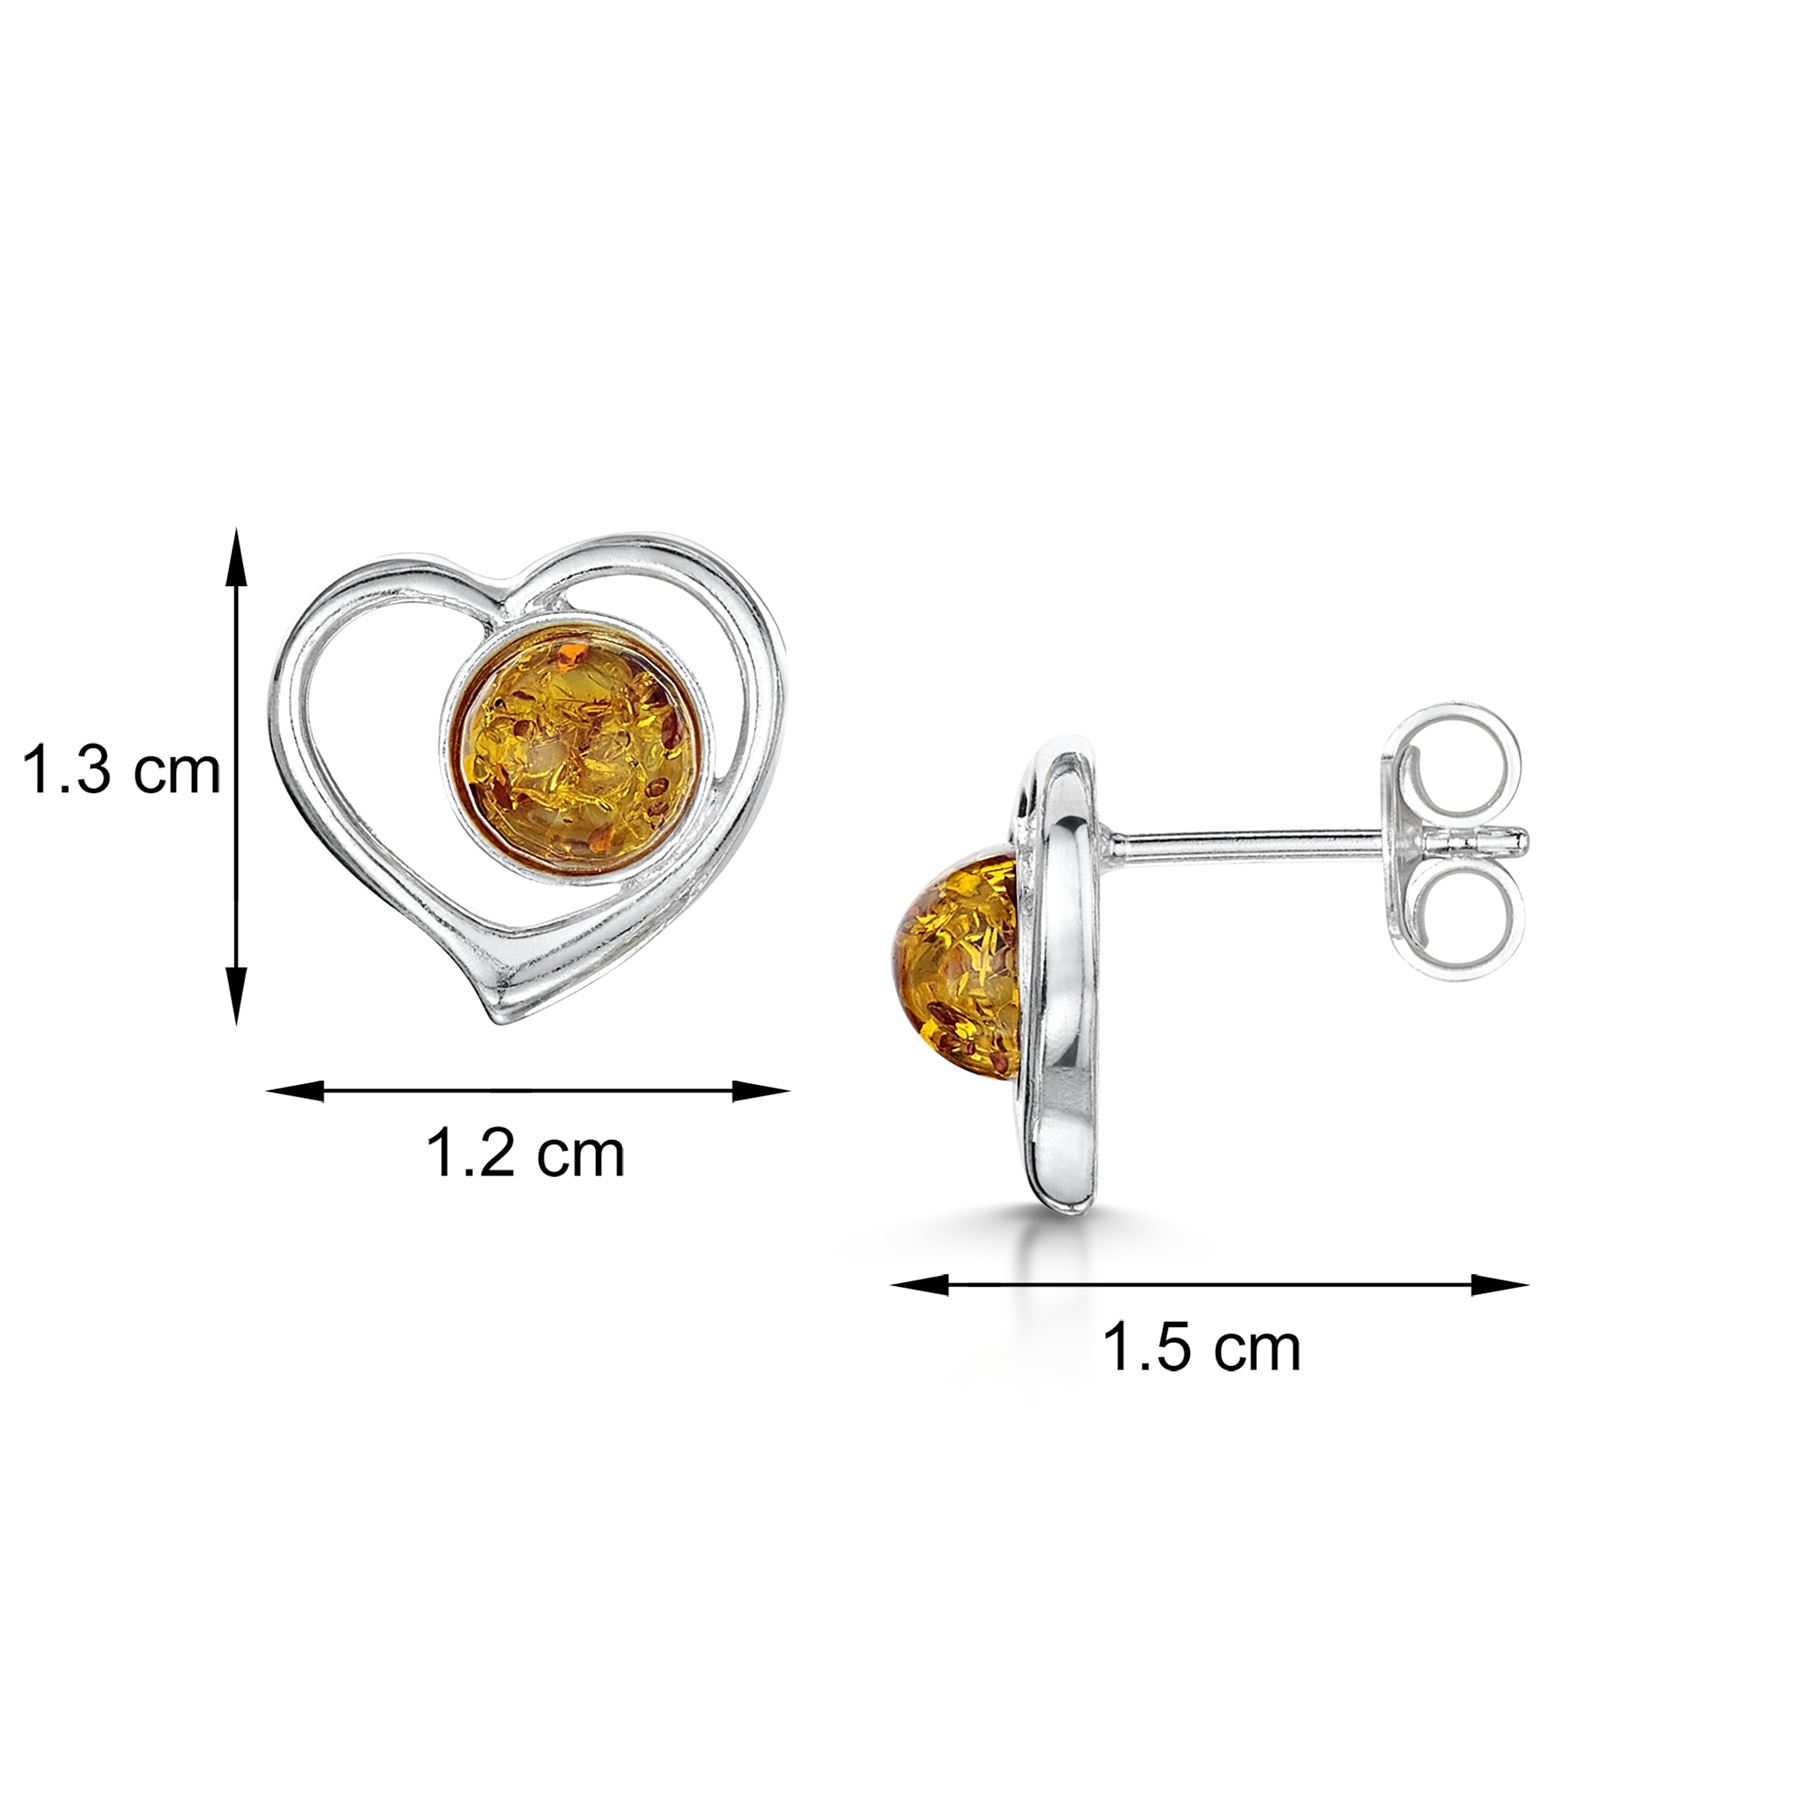 Amberta-Genuine-925-Sterling-Silver-Earrings-with-Natural-Baltic-Amber-Gemstone thumbnail 47